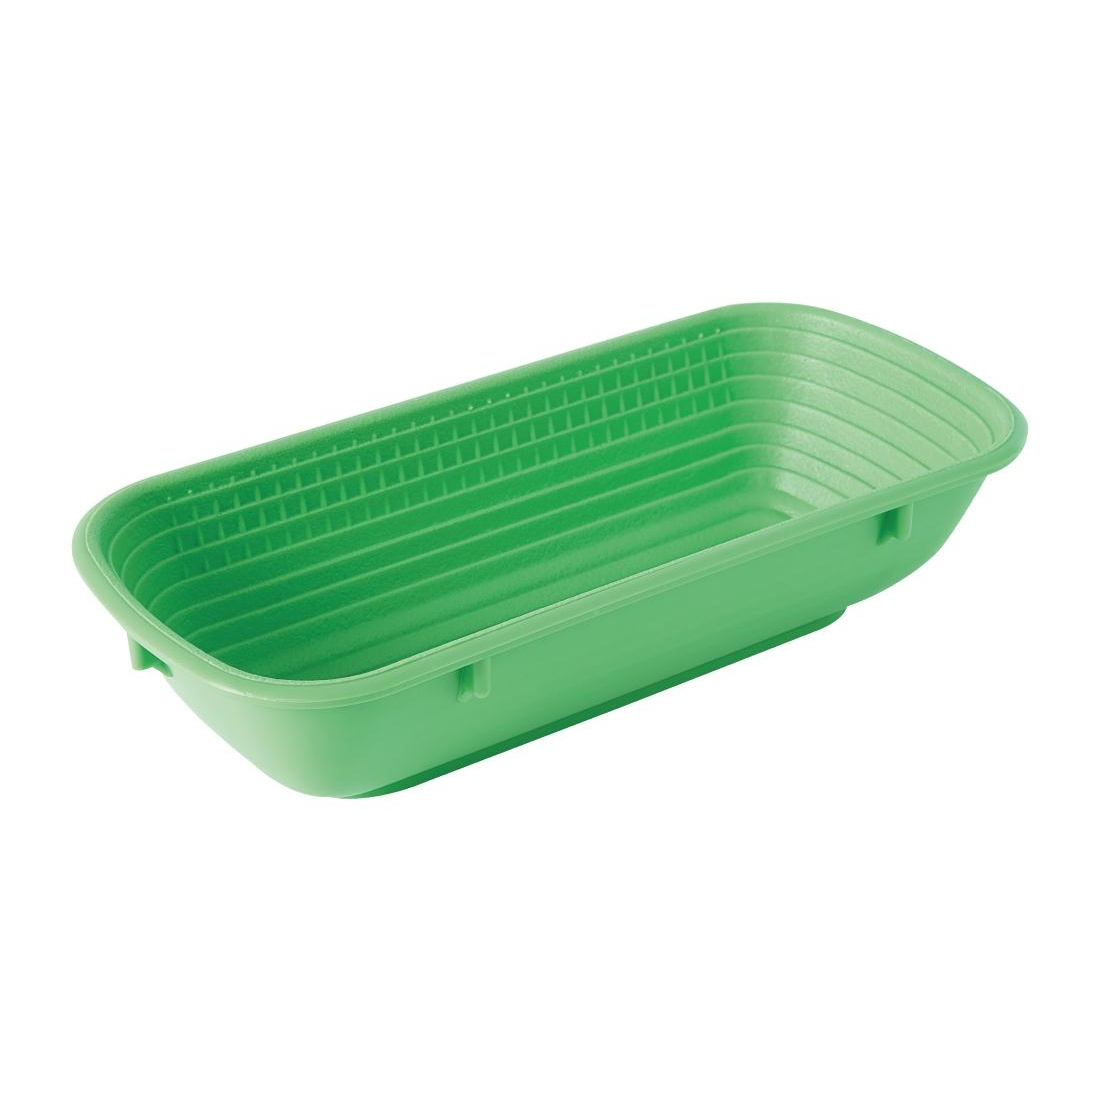 Schneider Rectangular Bread Proofing Basket 500g